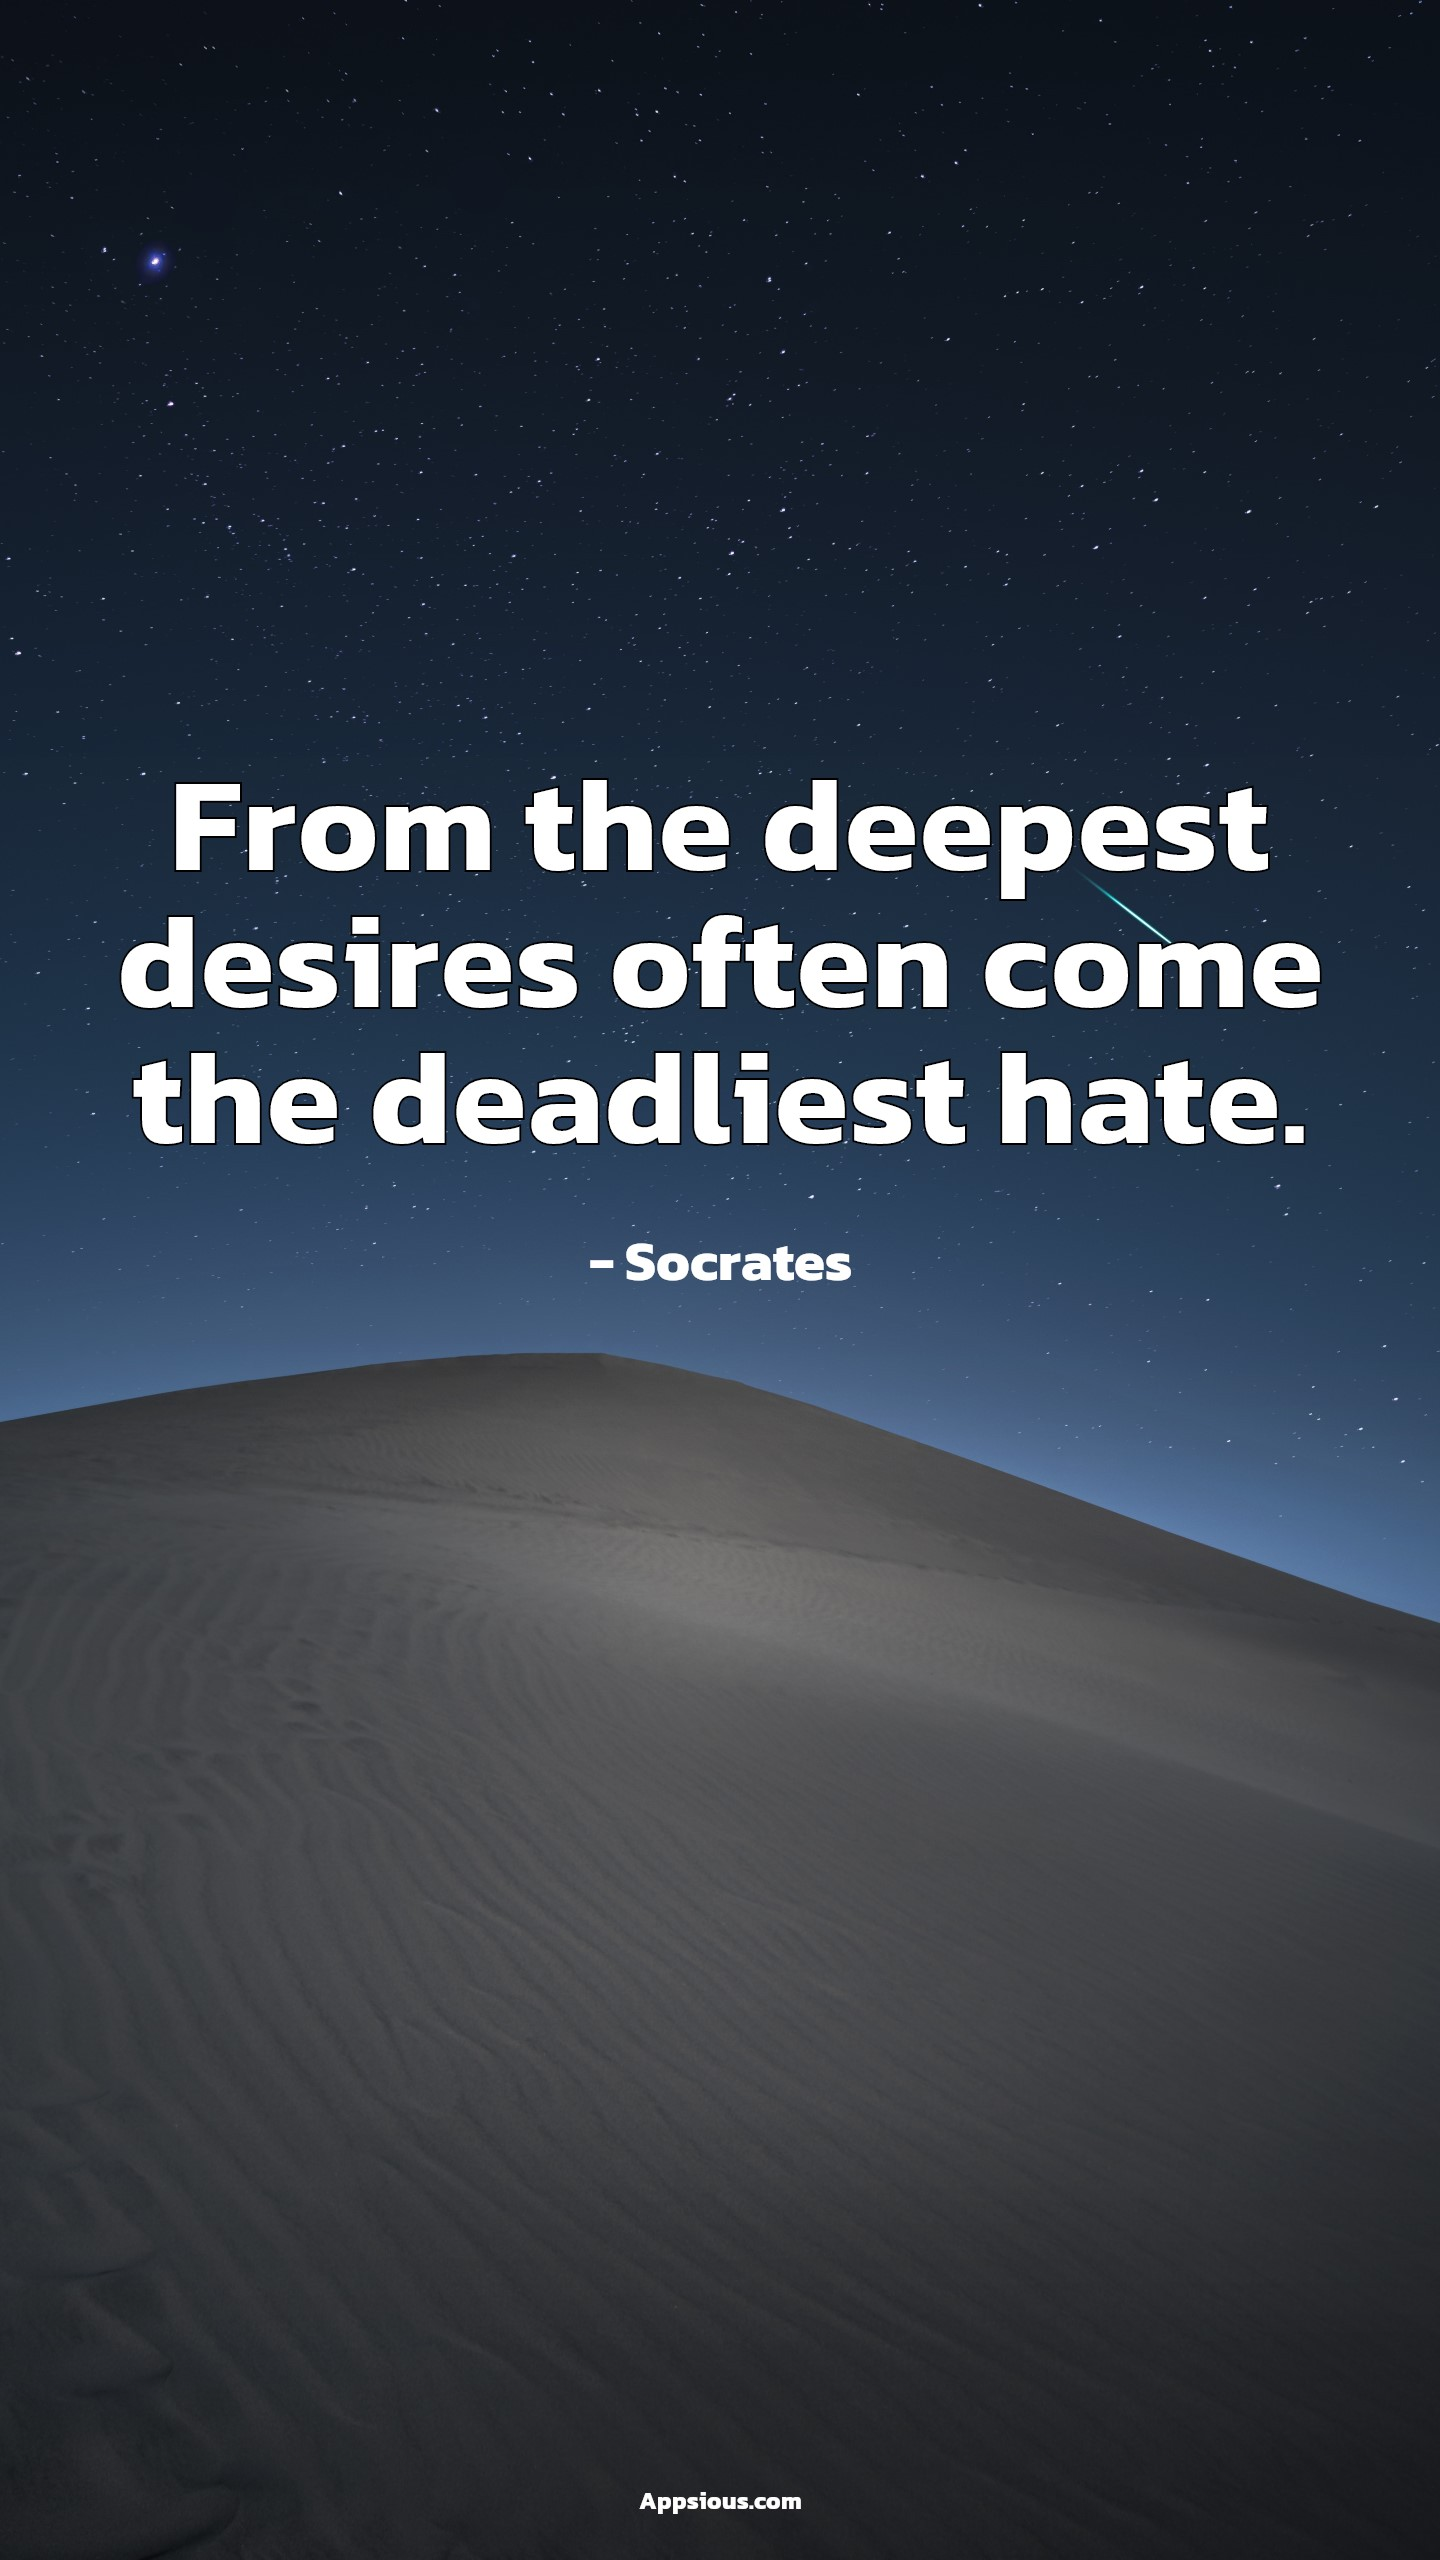 From the deepest desires often come the deadliest hate.